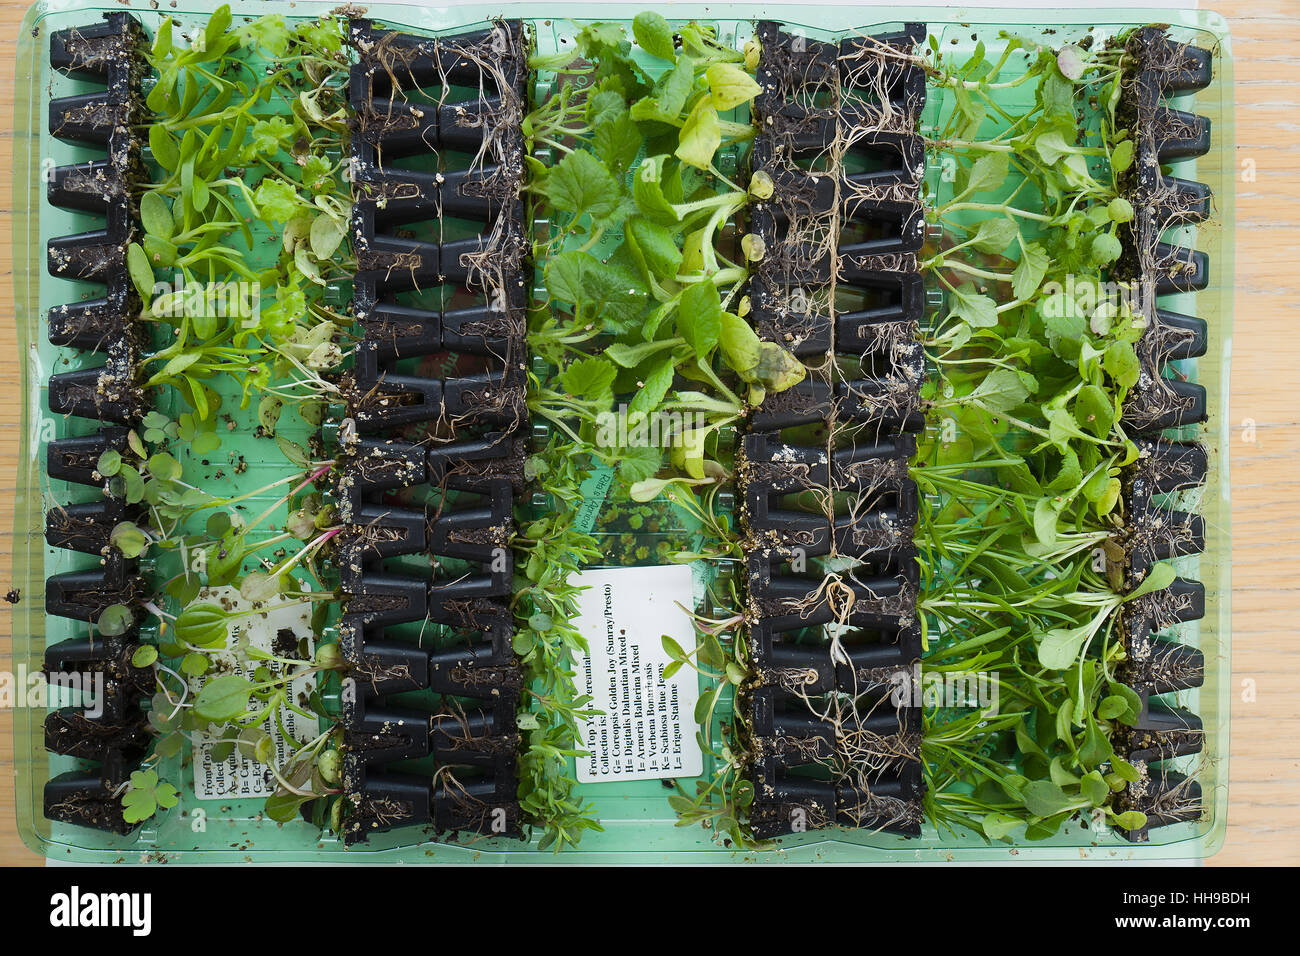 Perennial plug plants as delivered, once opened, by mail order in UK - Stock Image